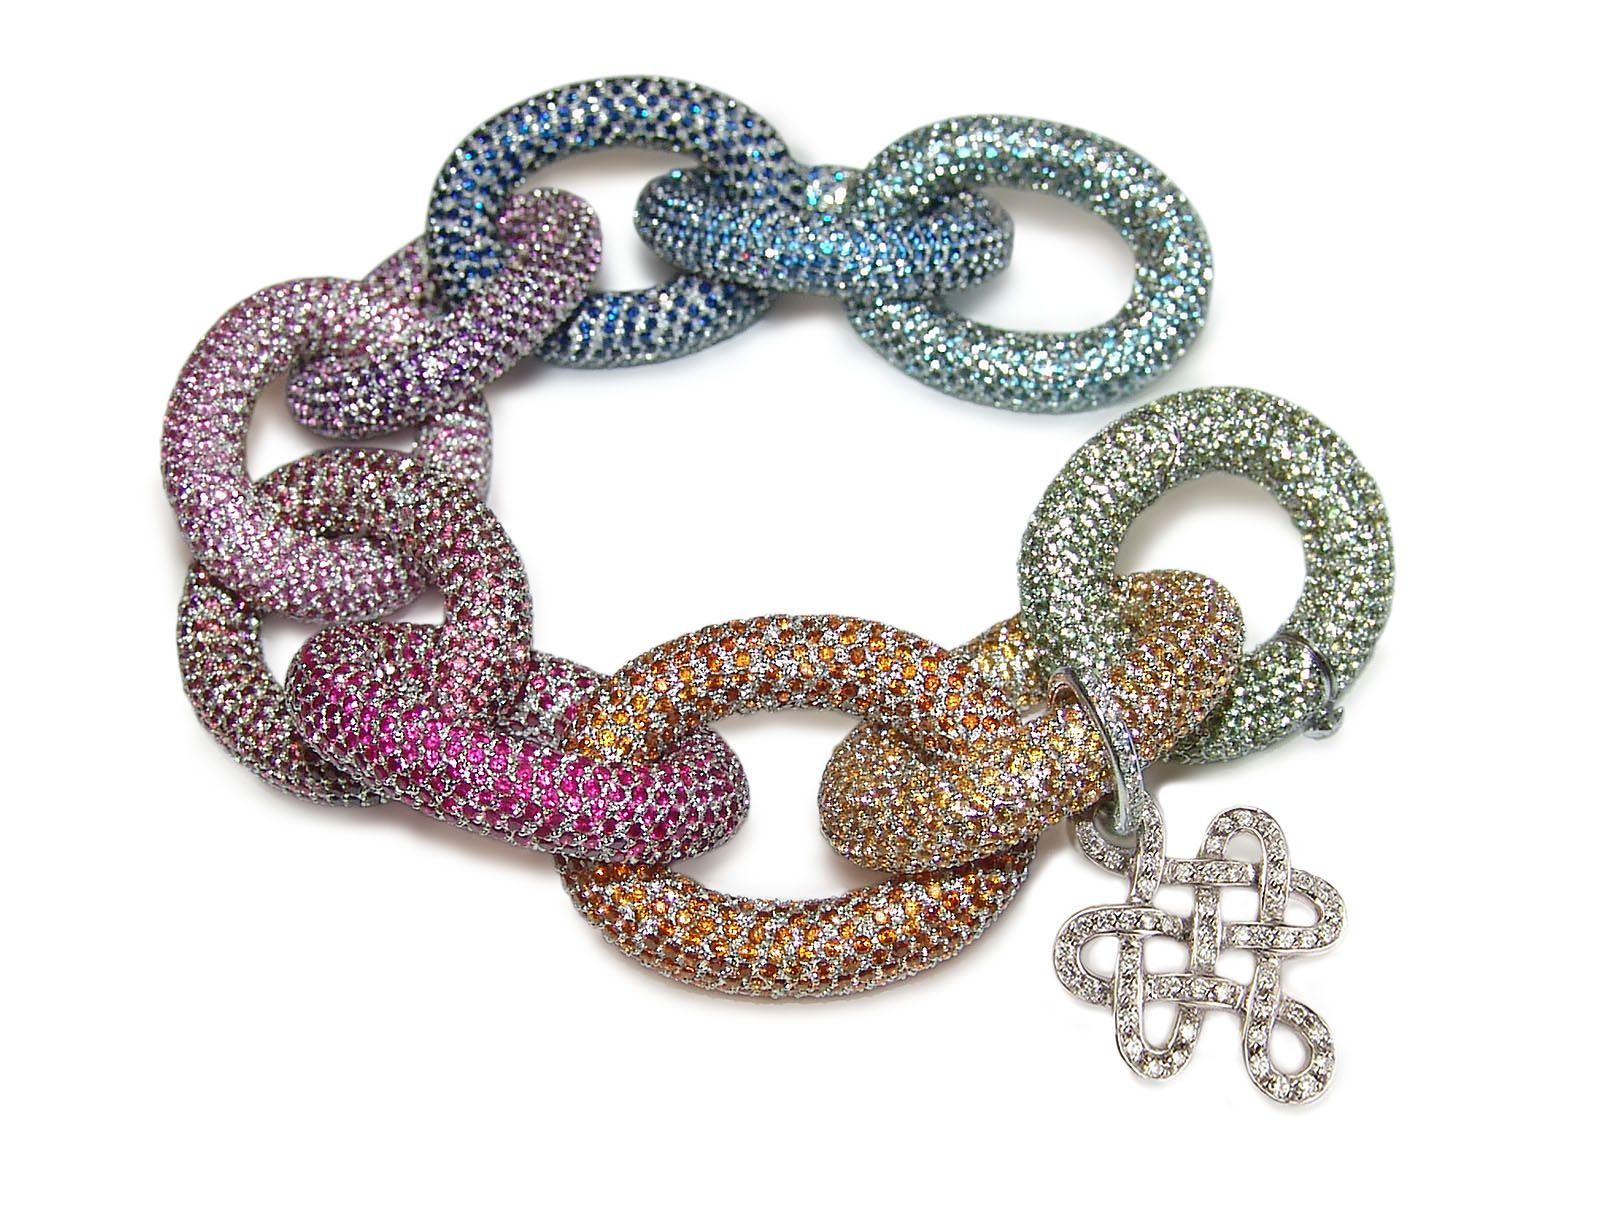 Diane Von Furstenberg by H.Stern collection. Bracelet Sutra in 18k white gold with colored gems, bold size.